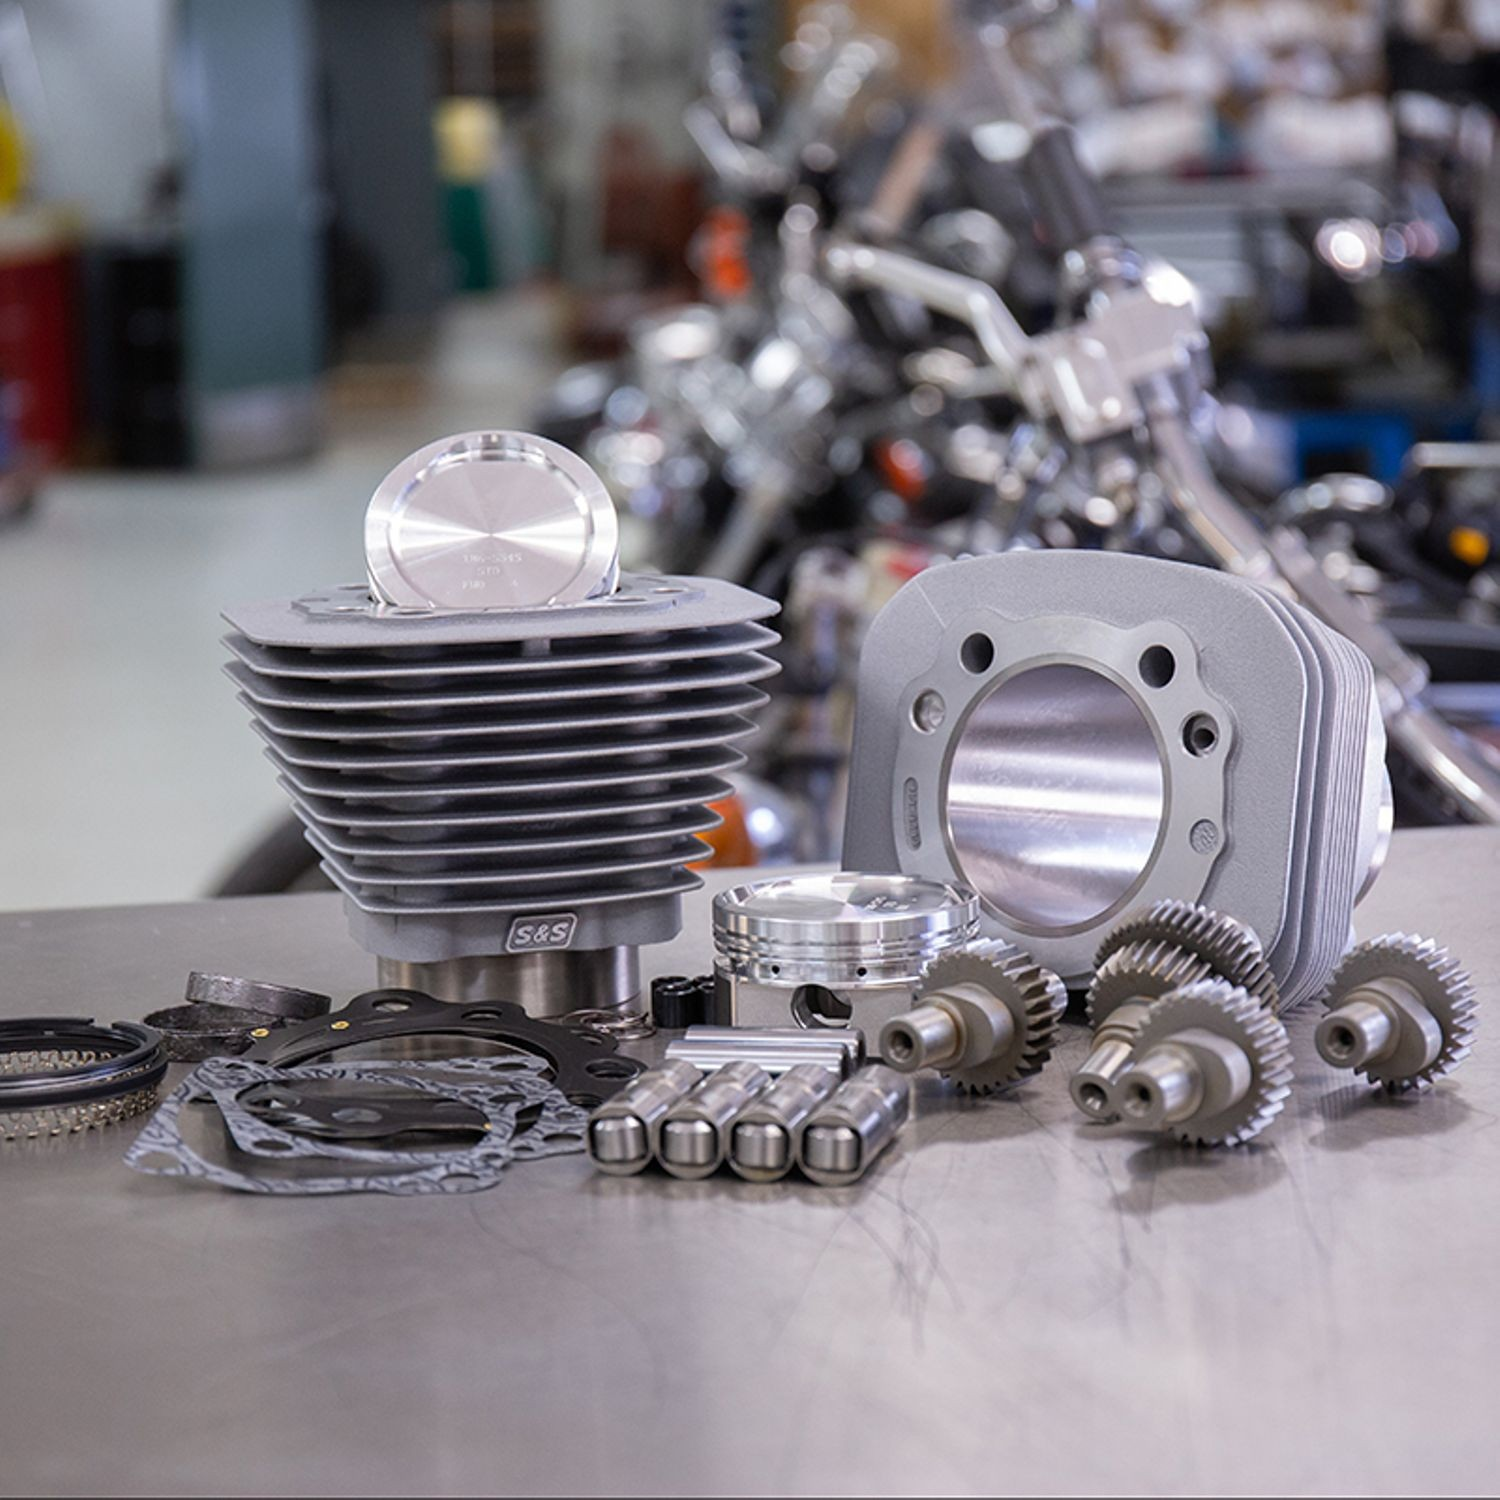 Hooligan Kit - 883cc to 1200cc for 2000-'19 HD® Sportster® Models - Silver